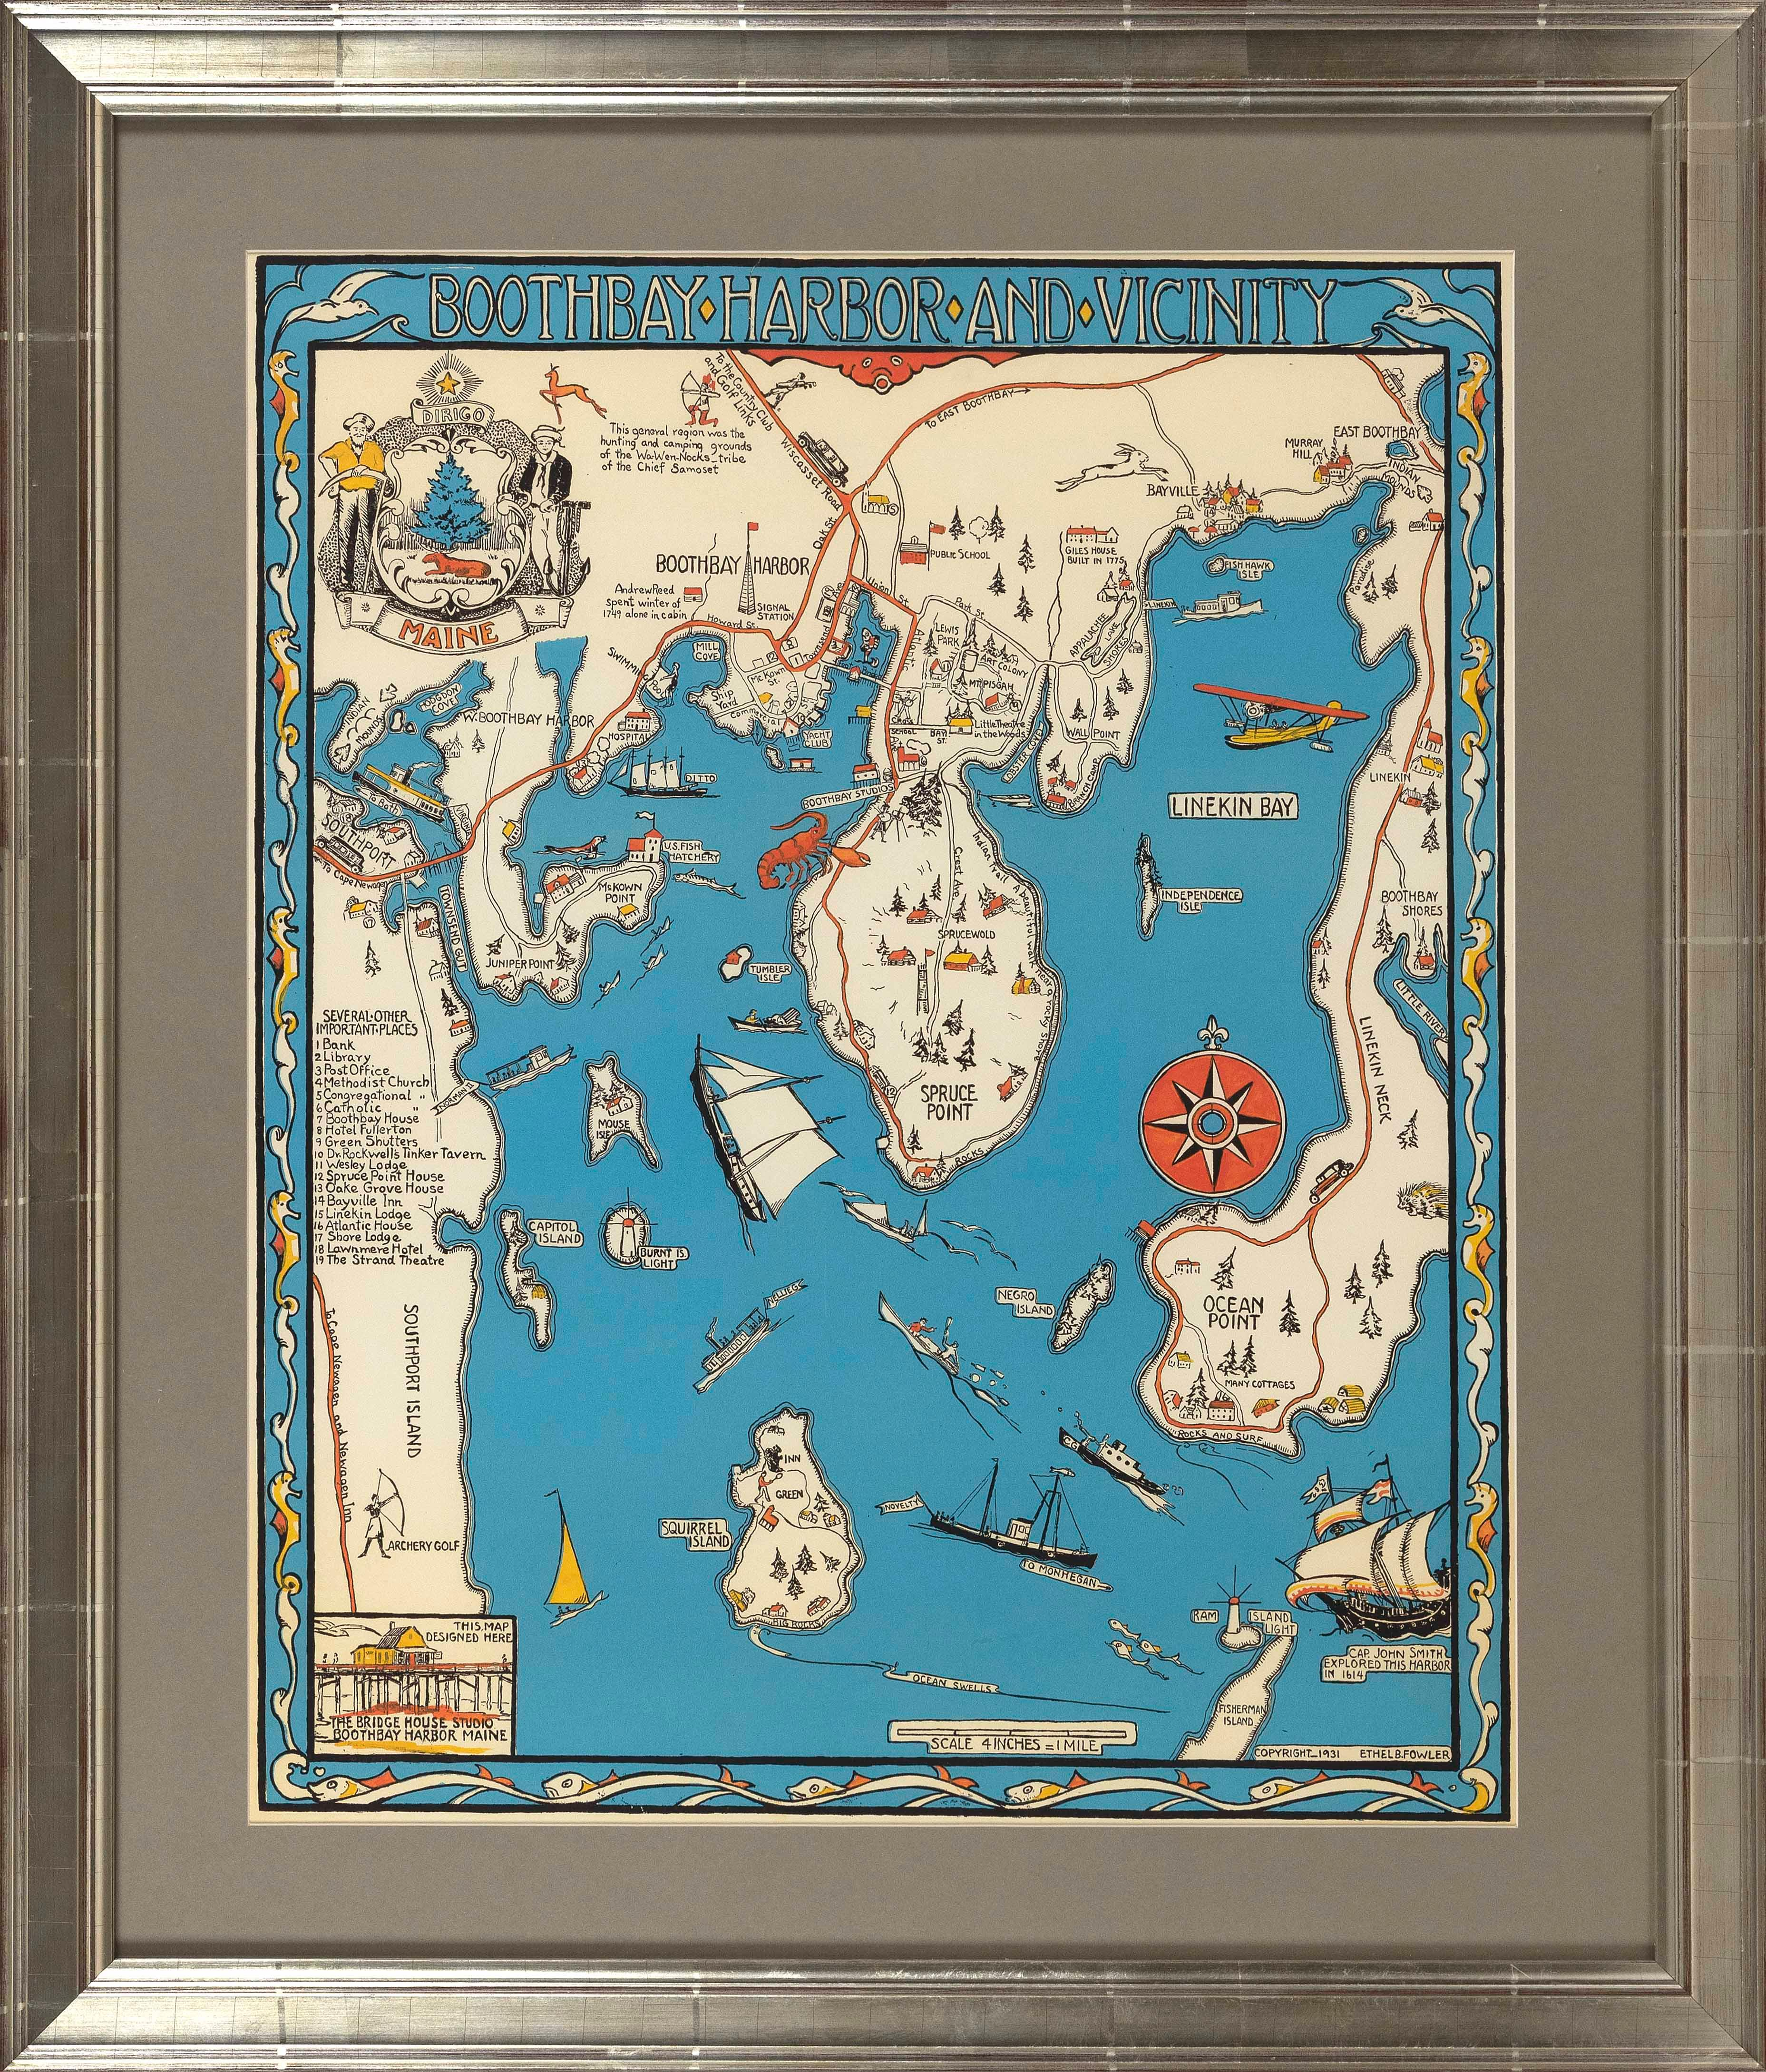 """REPRODUCTION DECORATIVE MAP """"BOOTHBAY HARBOR AND VICINITY"""" Contemporary 28"""" x 22"""" sight. Framed 37"""" x 31.5""""."""